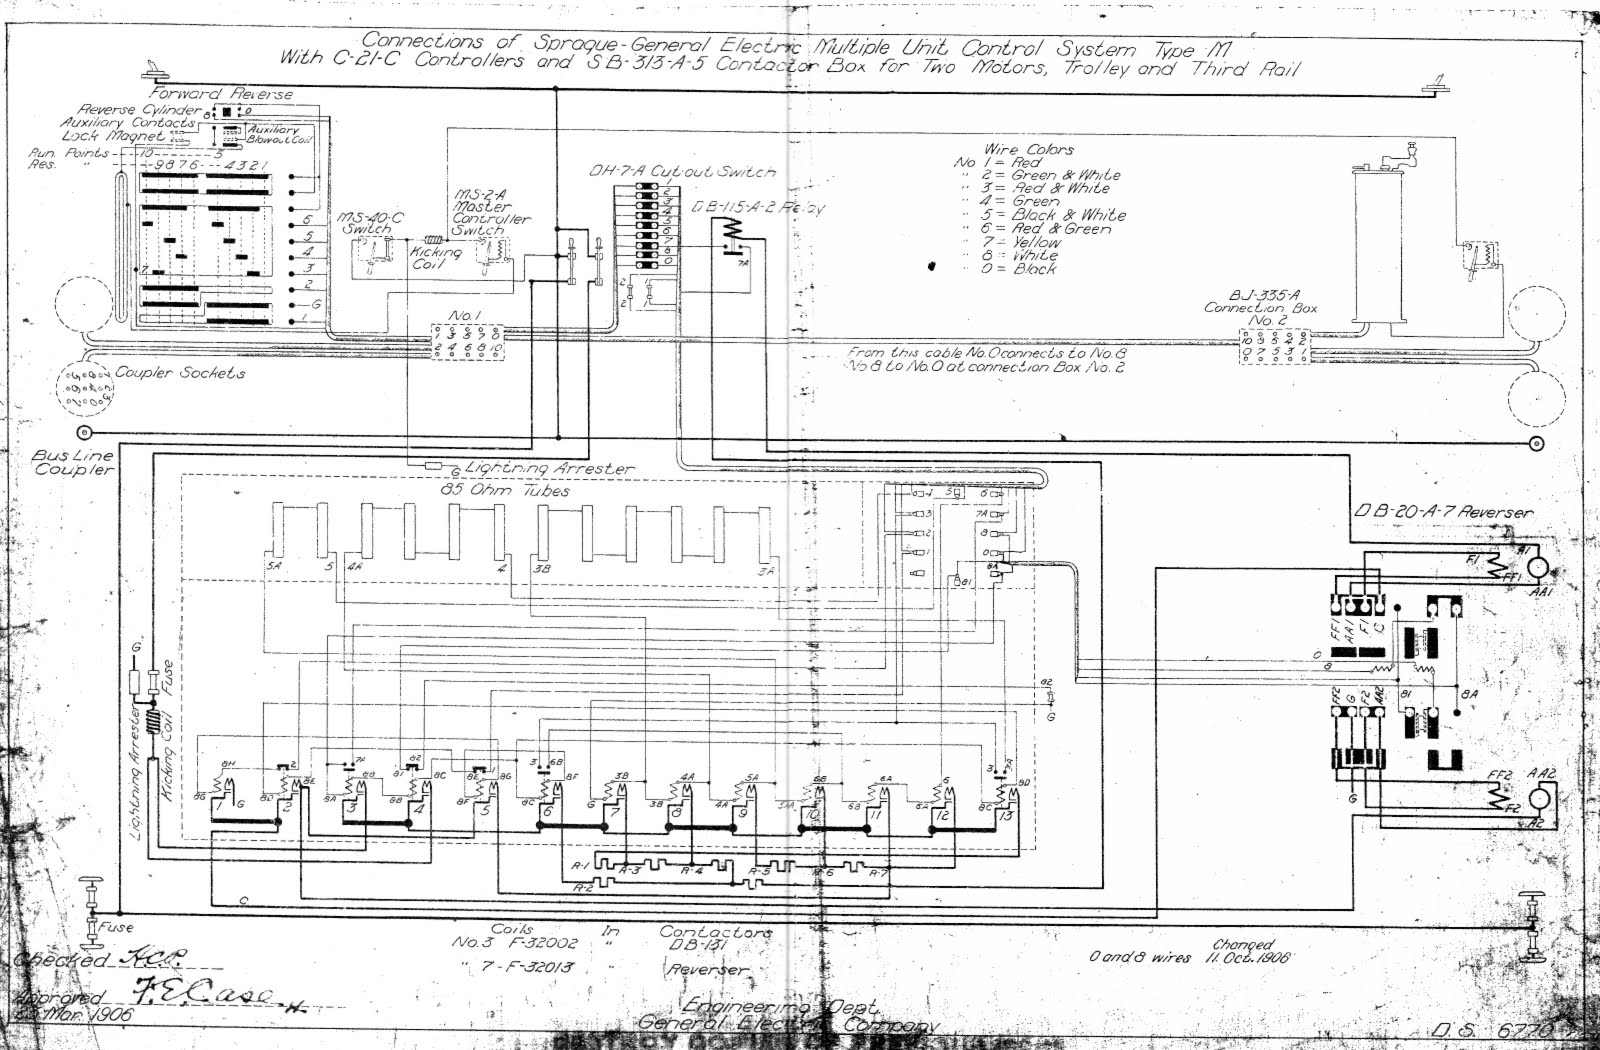 1984 Dodge Ignition Wiring Diagram Schematics Diagrams Free Ram 318 U2022 For External Voltage Regulator